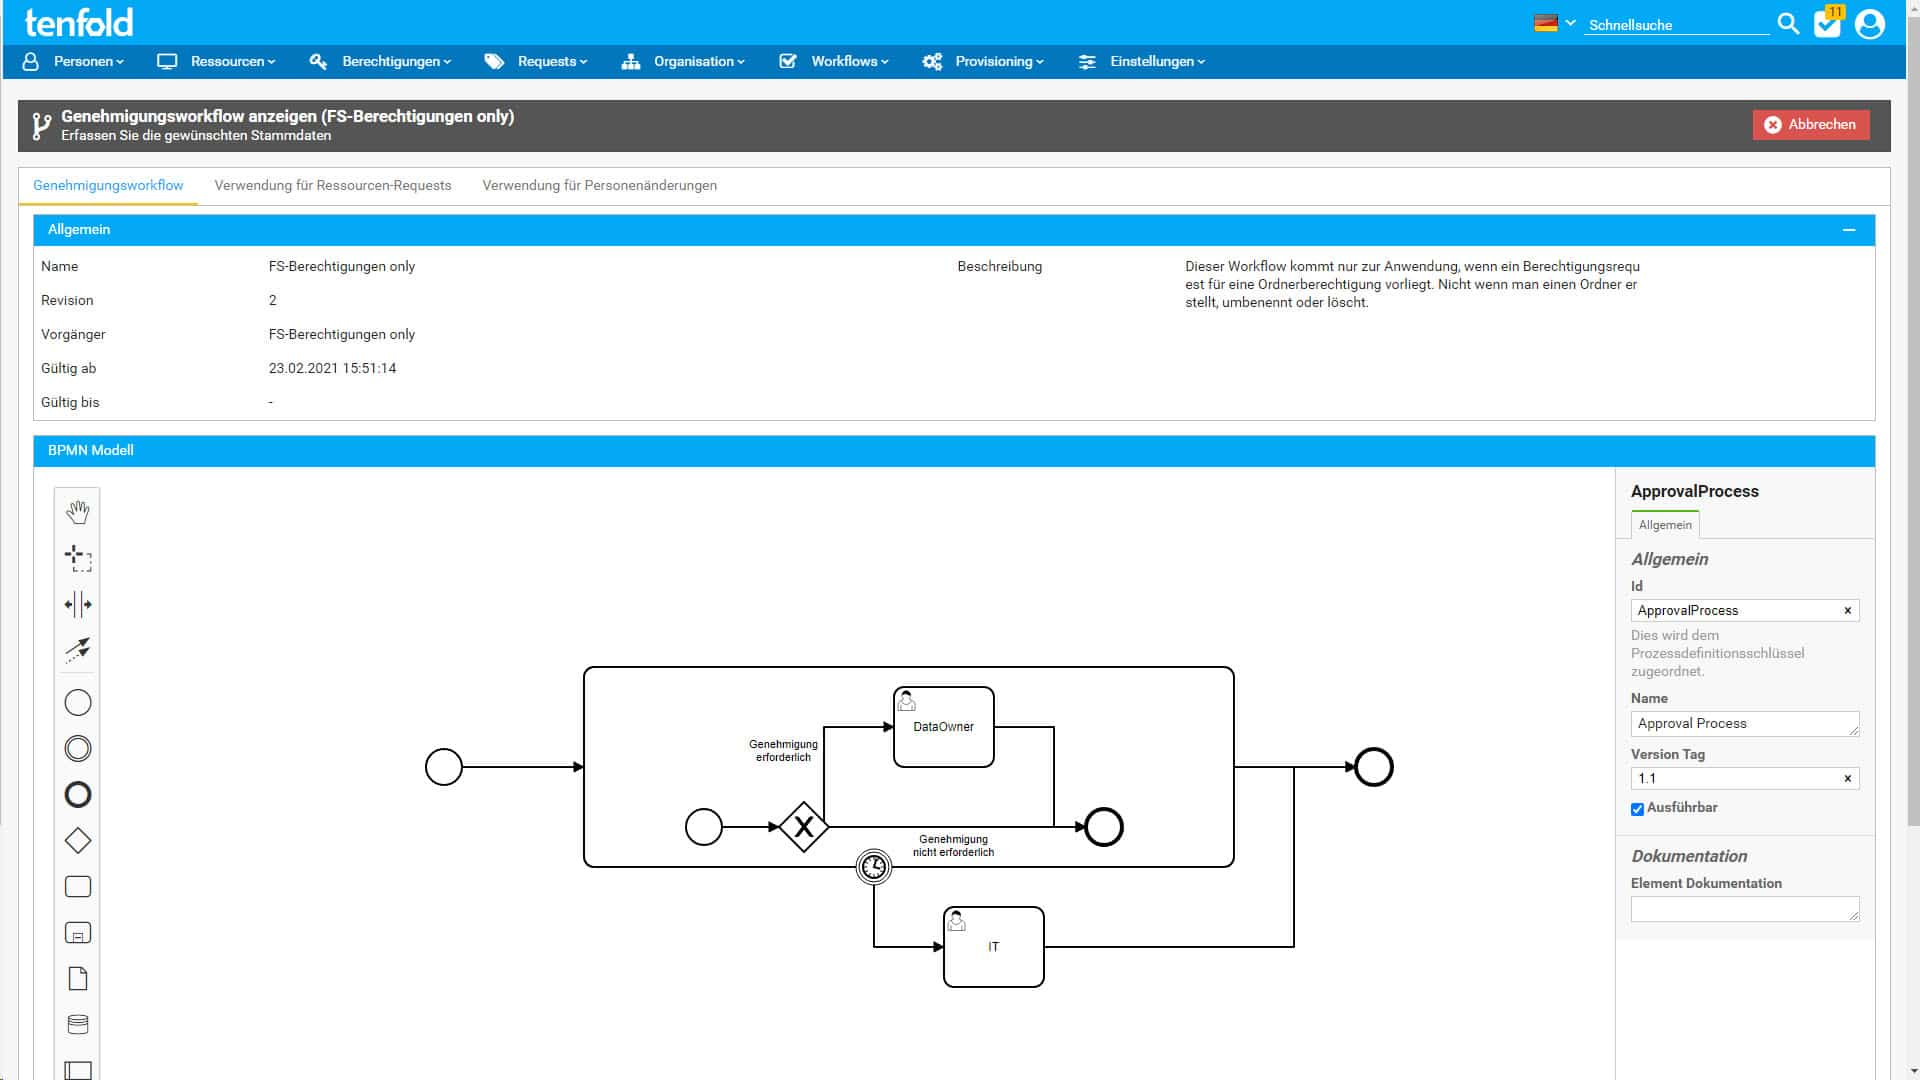 permSECURE - tenfold Workflows